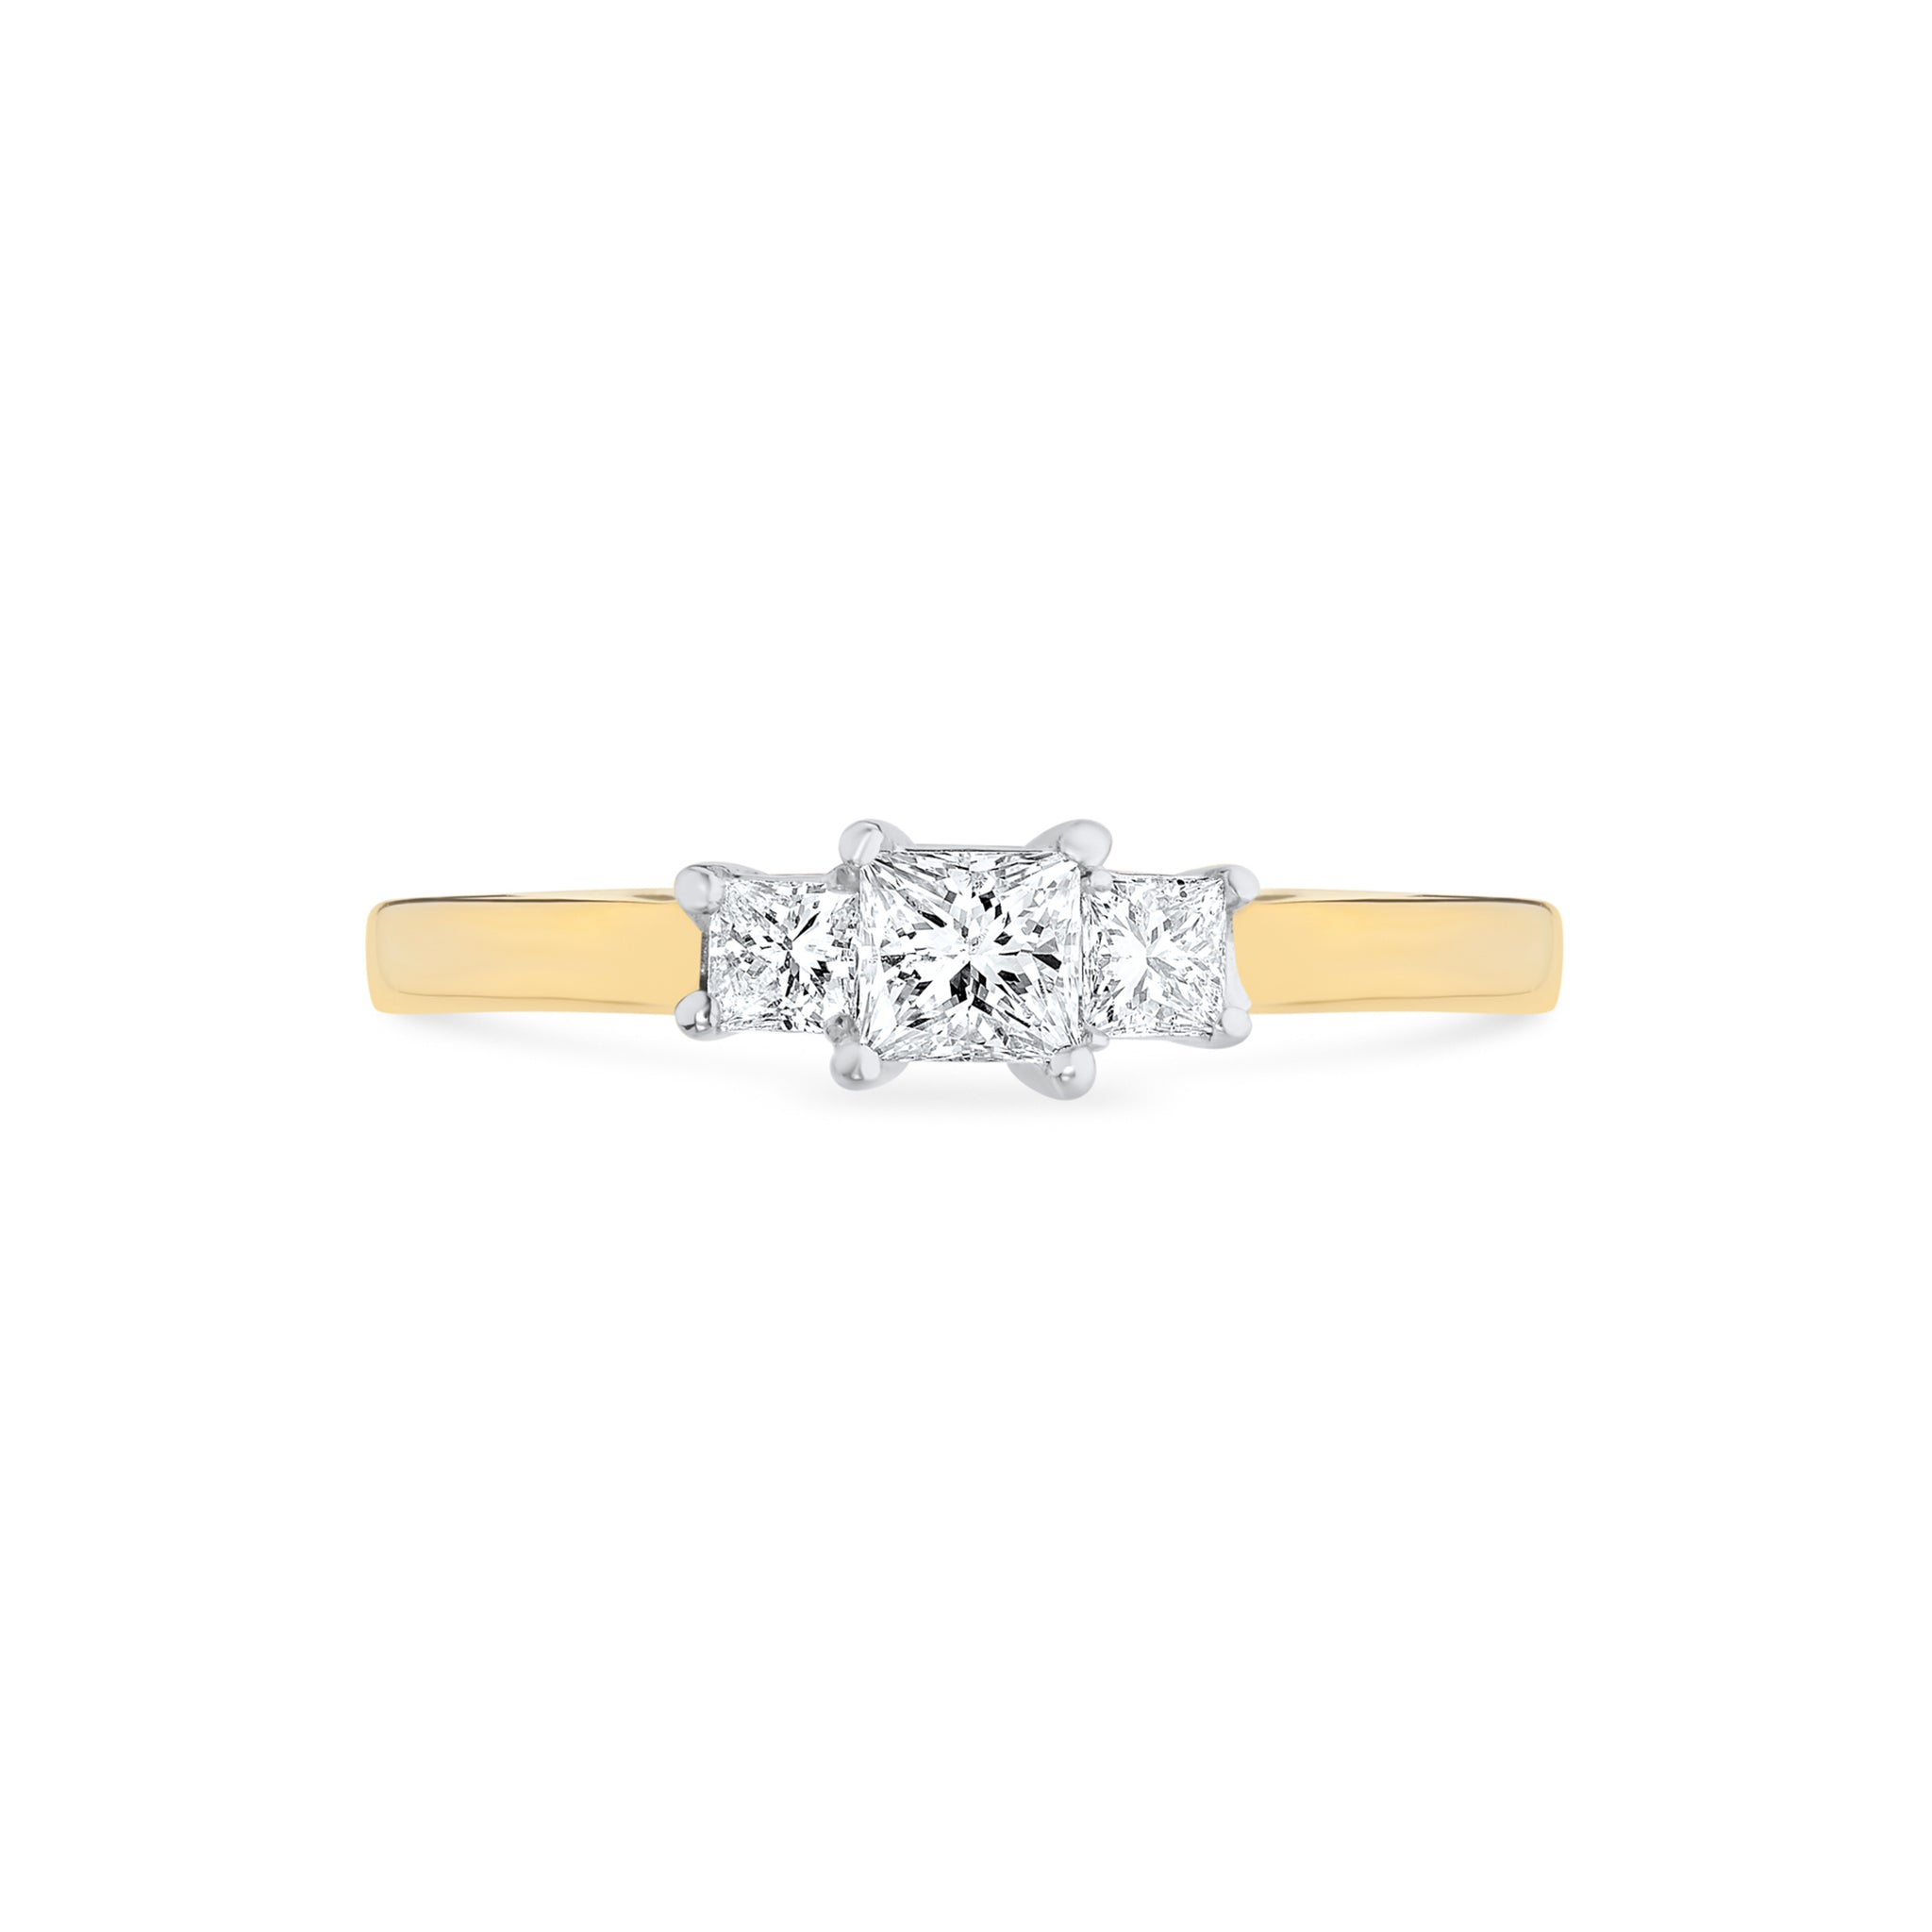 Princess Cut Diamond Trilogy Engagement Ring